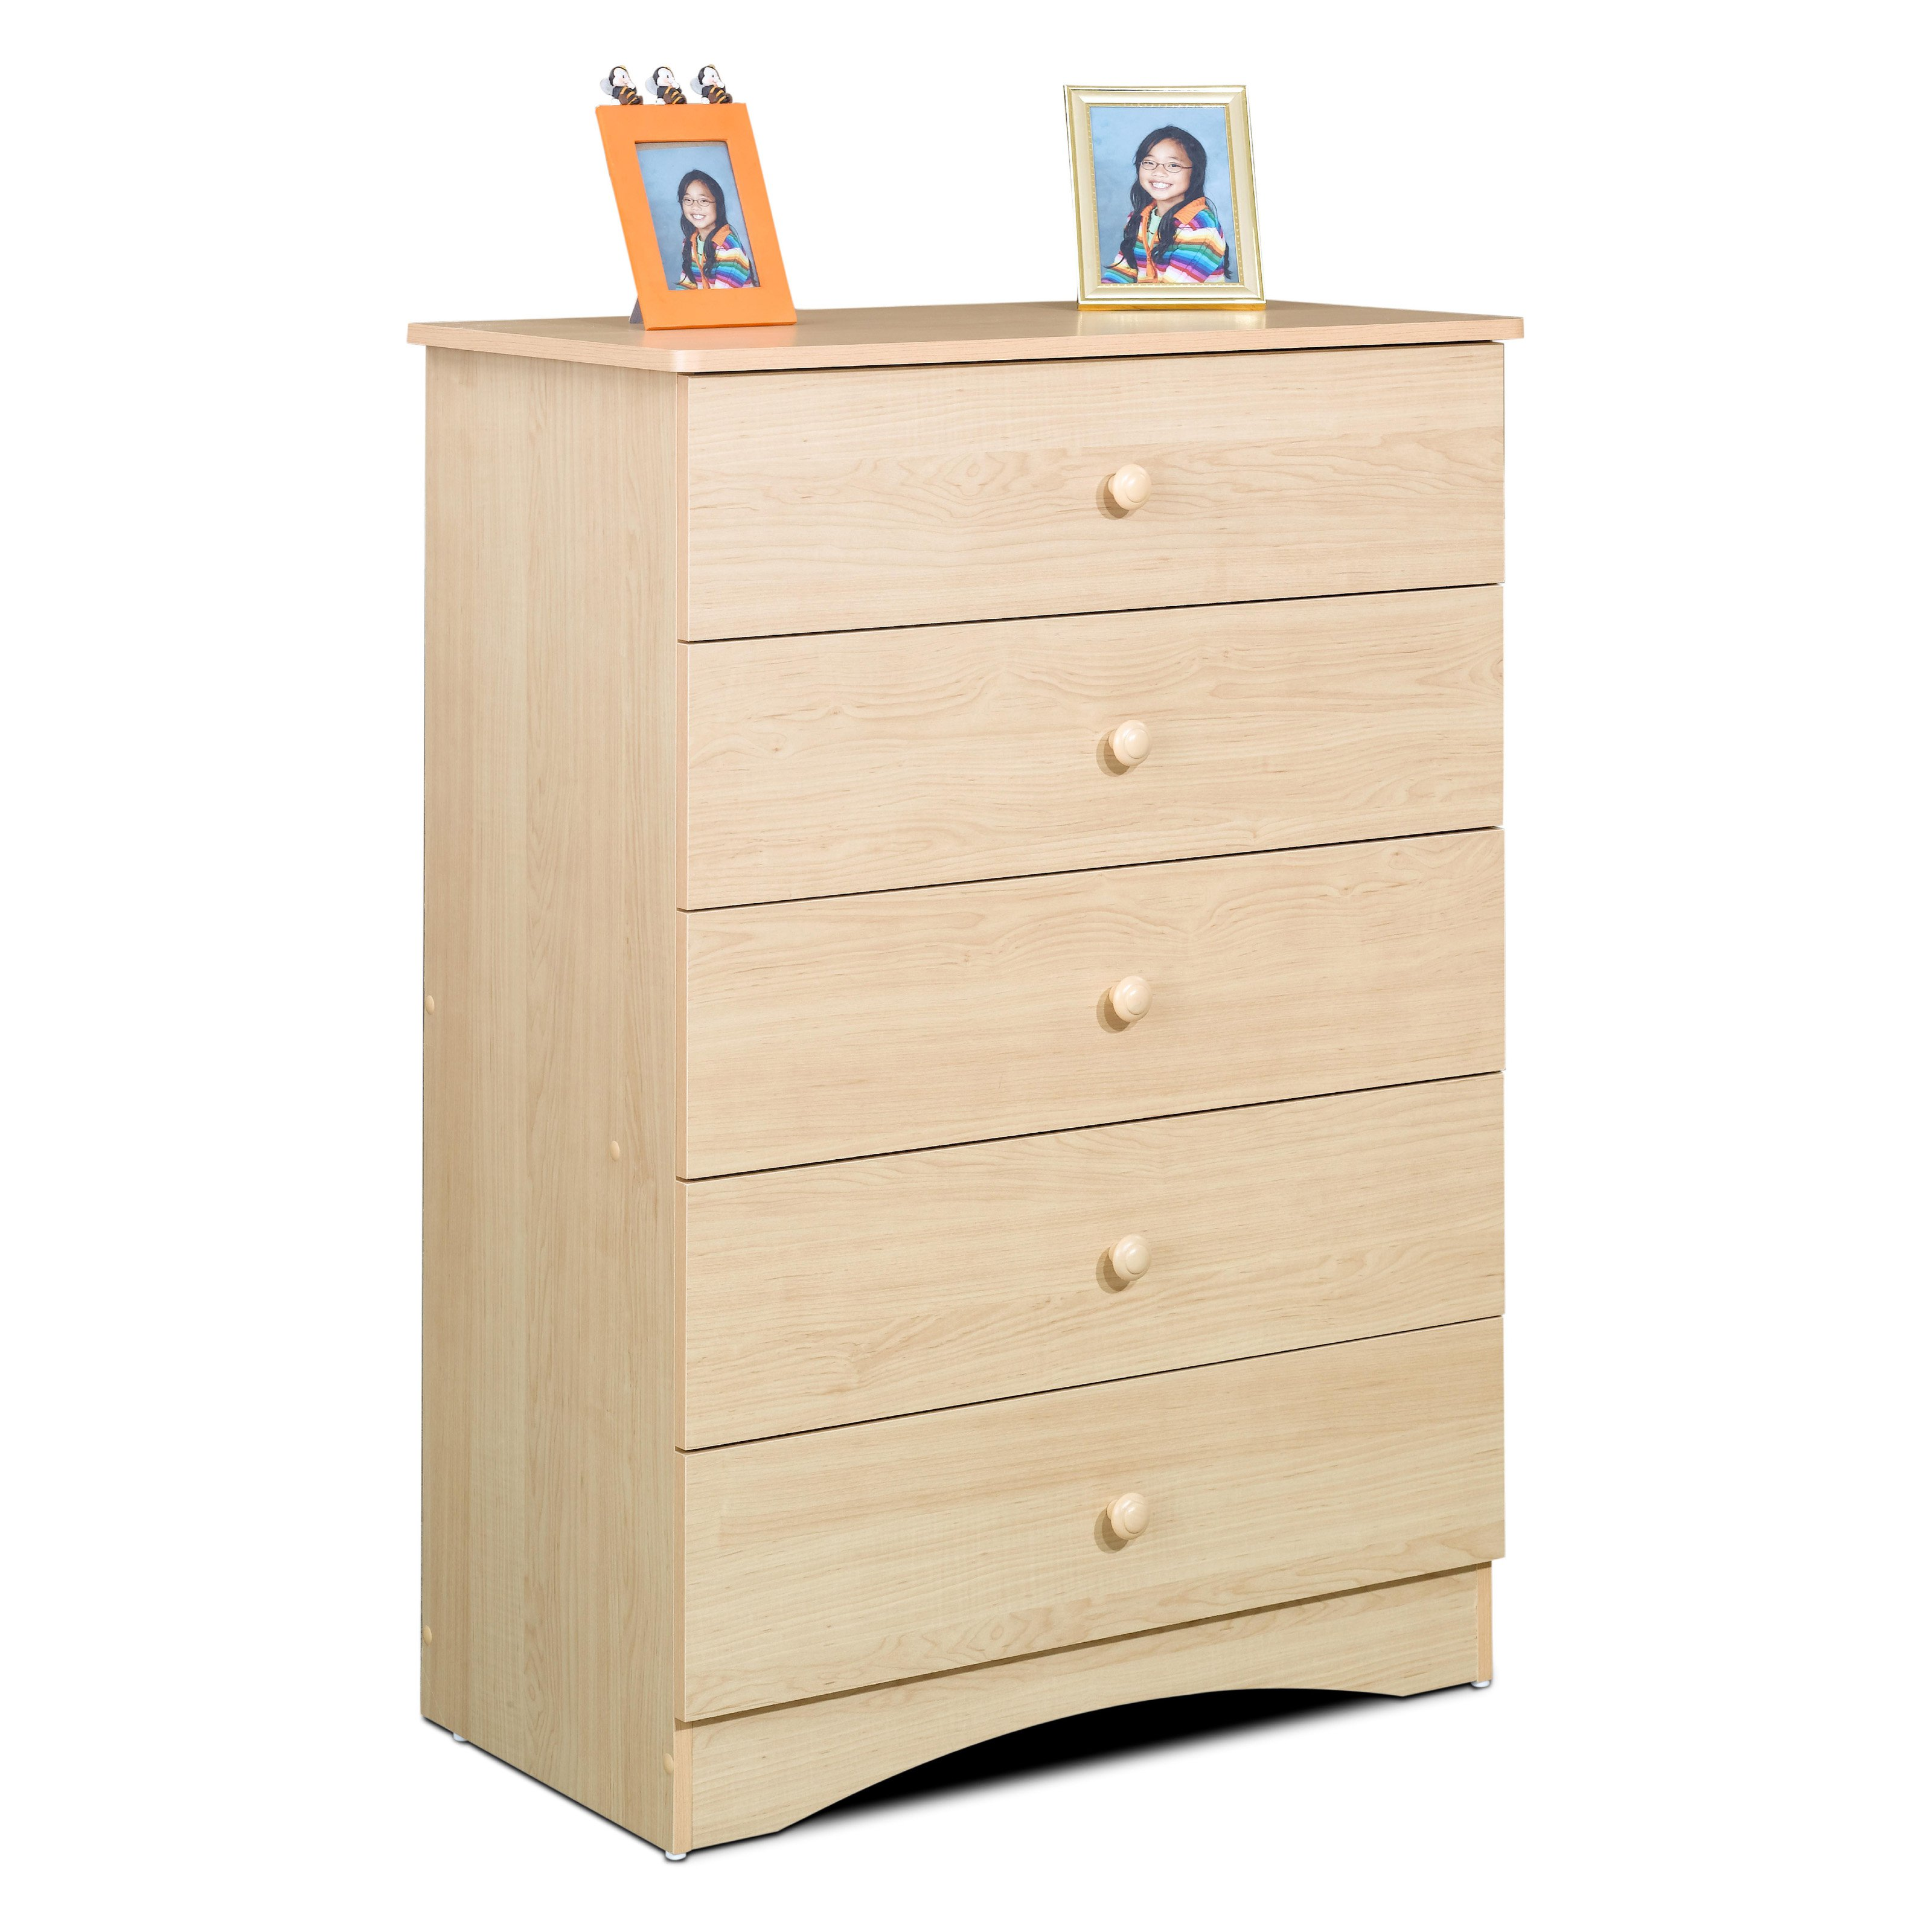 Alegria Natural Maple 5-Drawer Chest Dresser